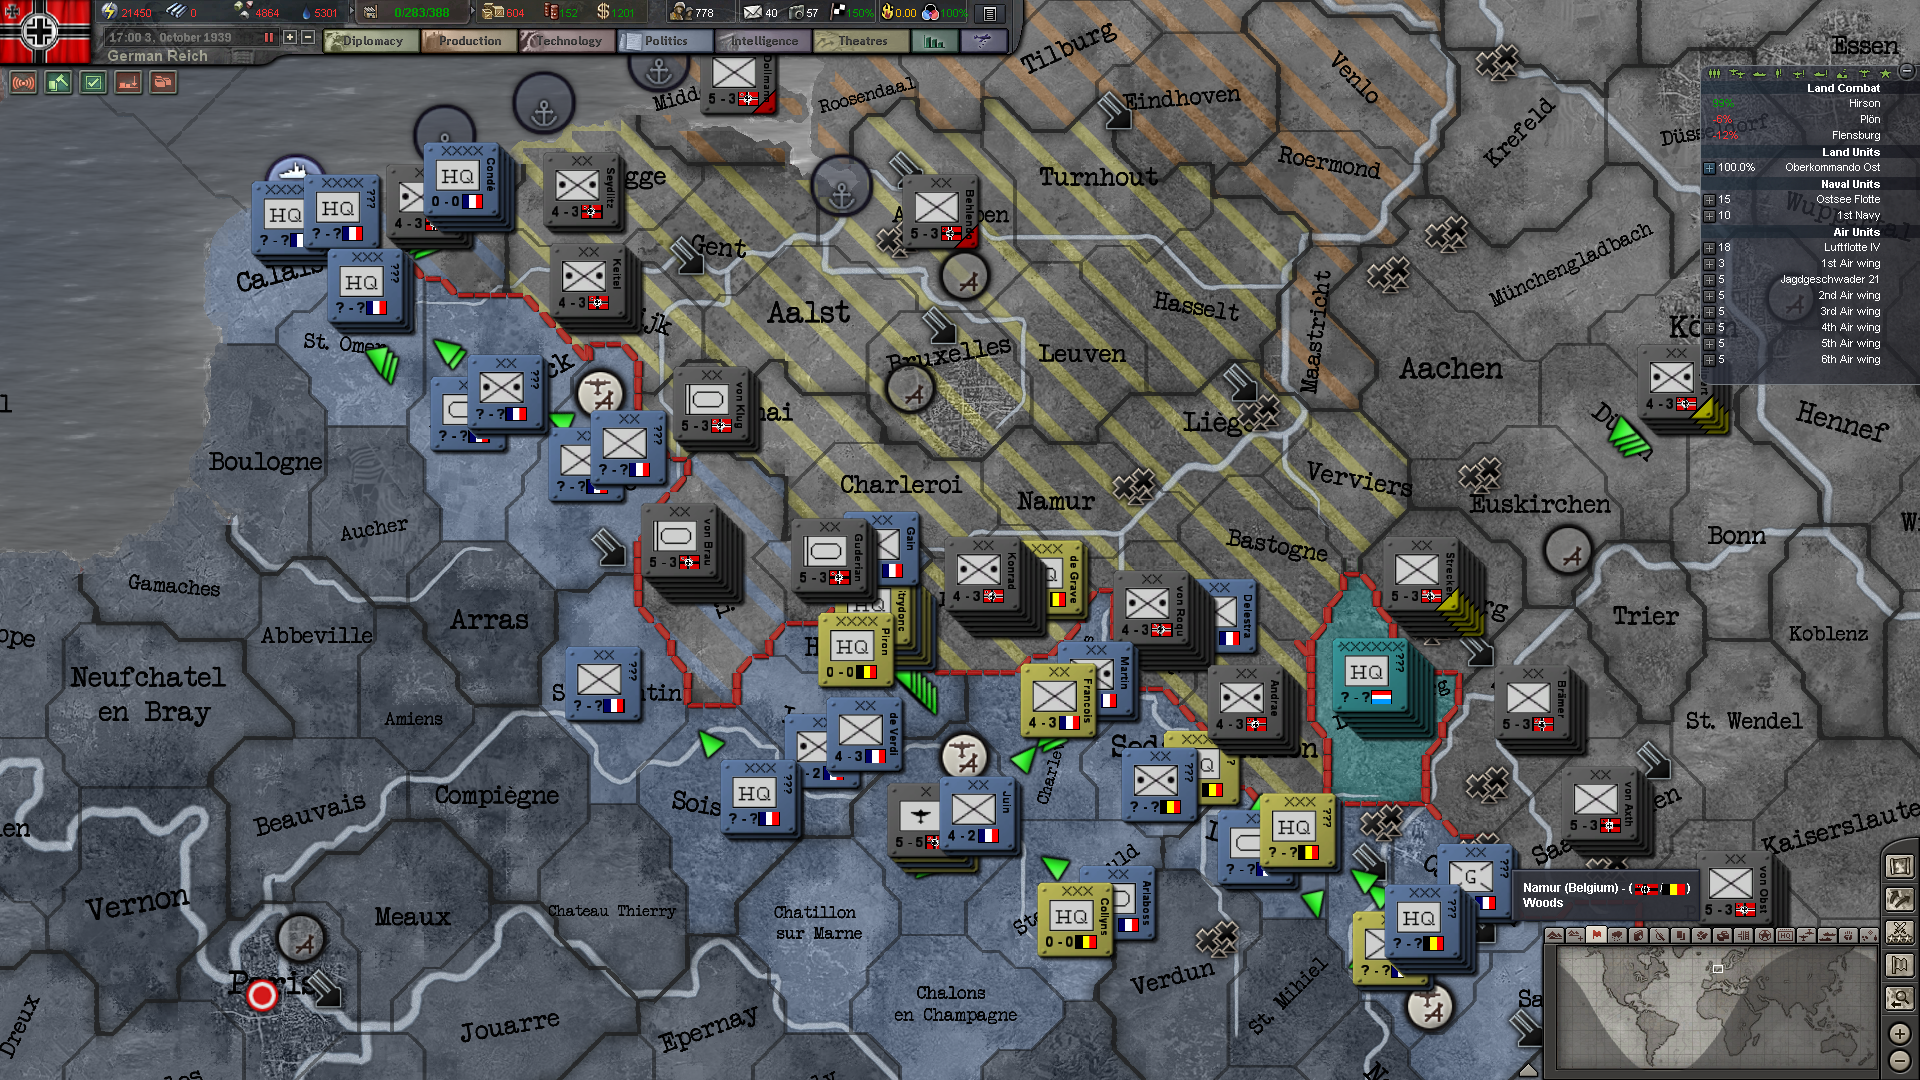 HOI3 HPP Ran out of fuel with Germany in 1939 by building only 1920x1080